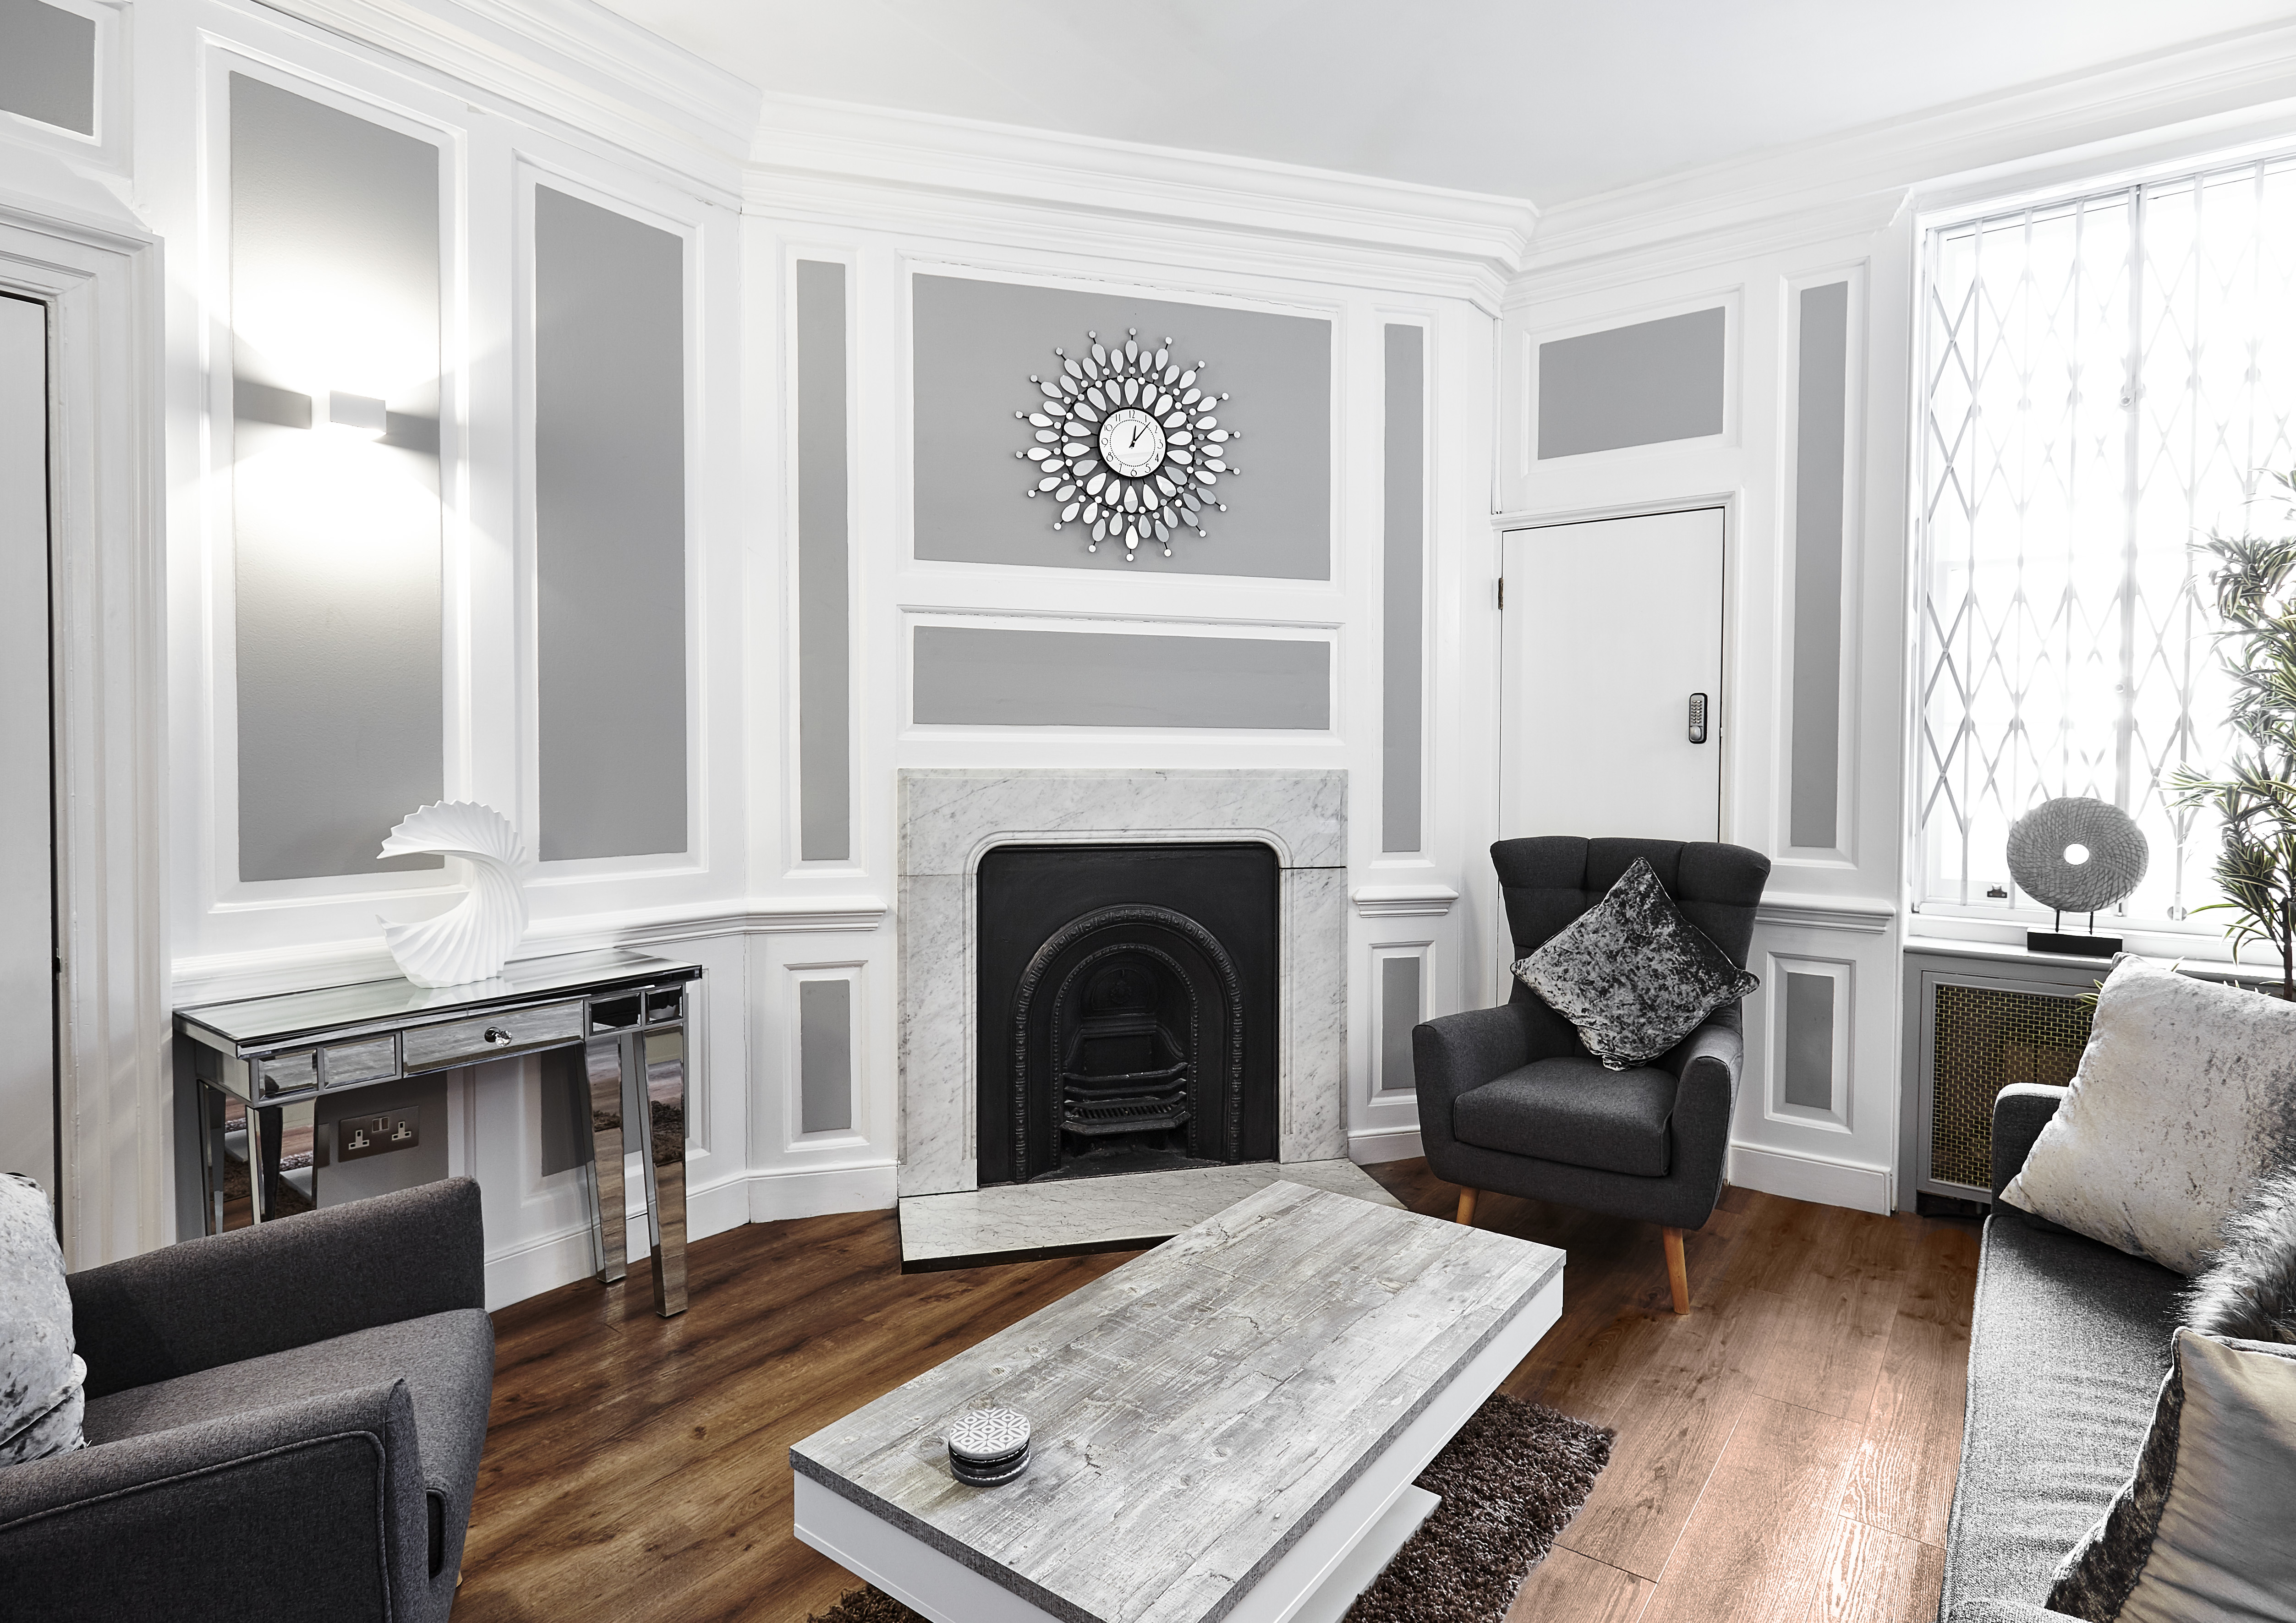 Podium Spaces Limited (Managed) - 56-58 Broadwick St, W1 - Piccadilly Circus